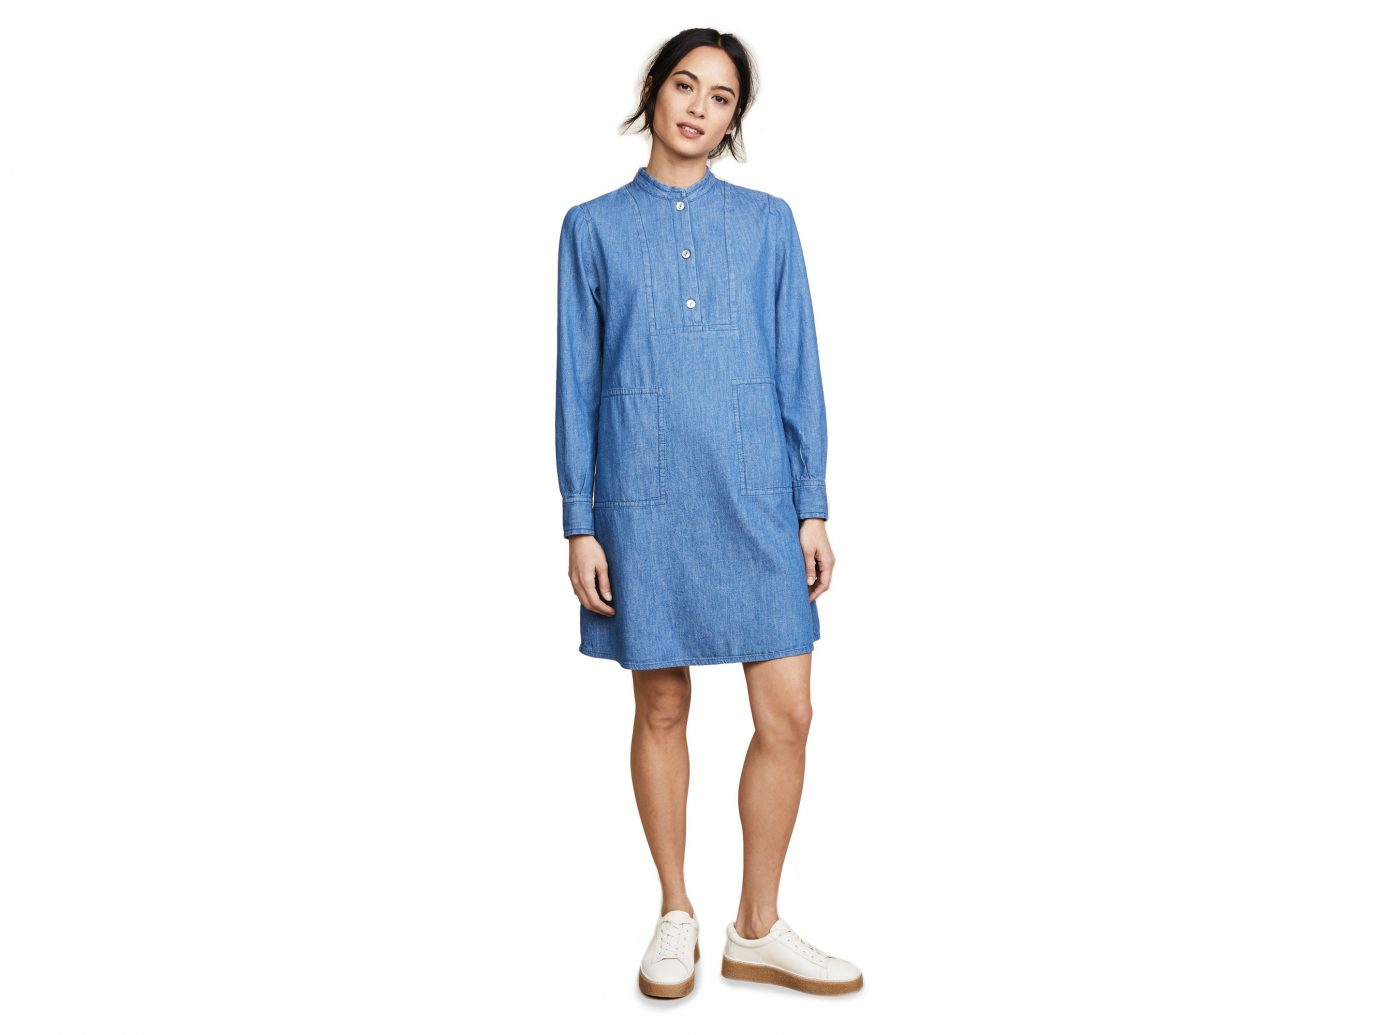 Style + Design Travel Shop standing clothing sleeve denim posing dress day dress electric blue button neck jeans joint shoe pattern work-clothing